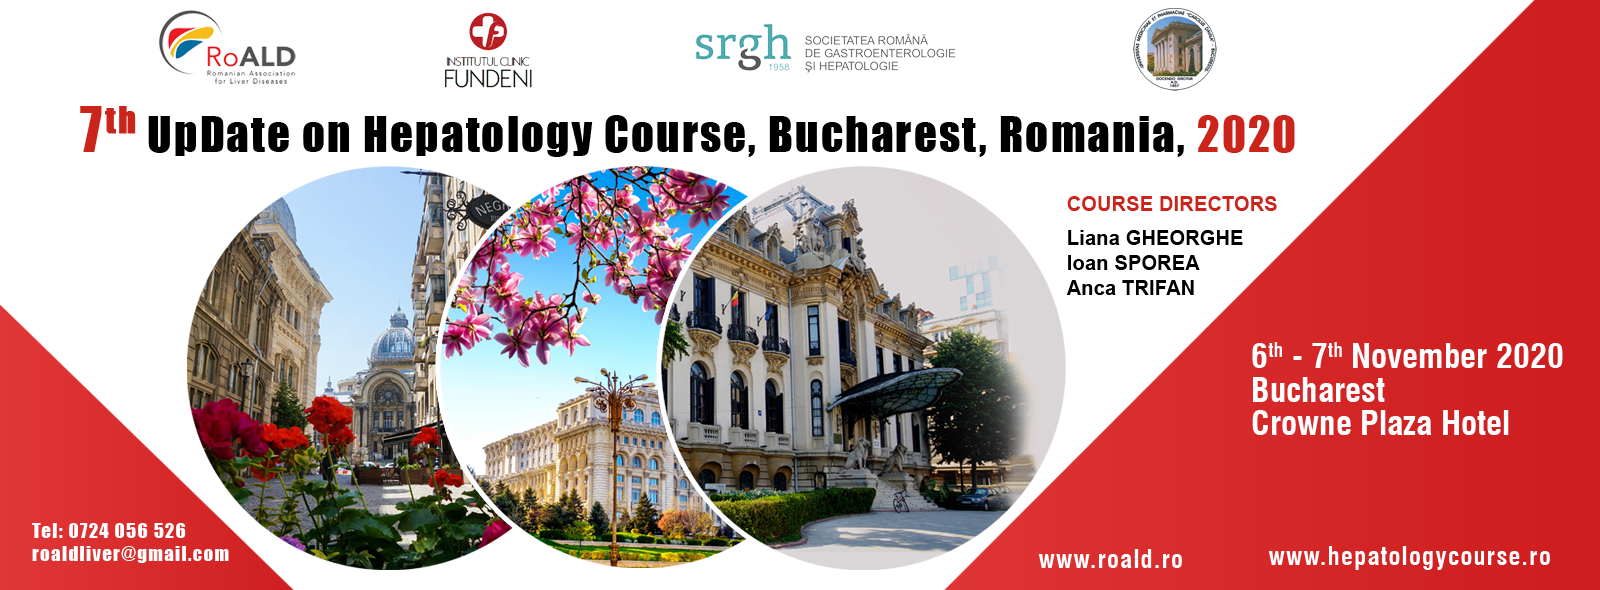 7th UpDate on Hepatology Course Bucharest 2020, Romania